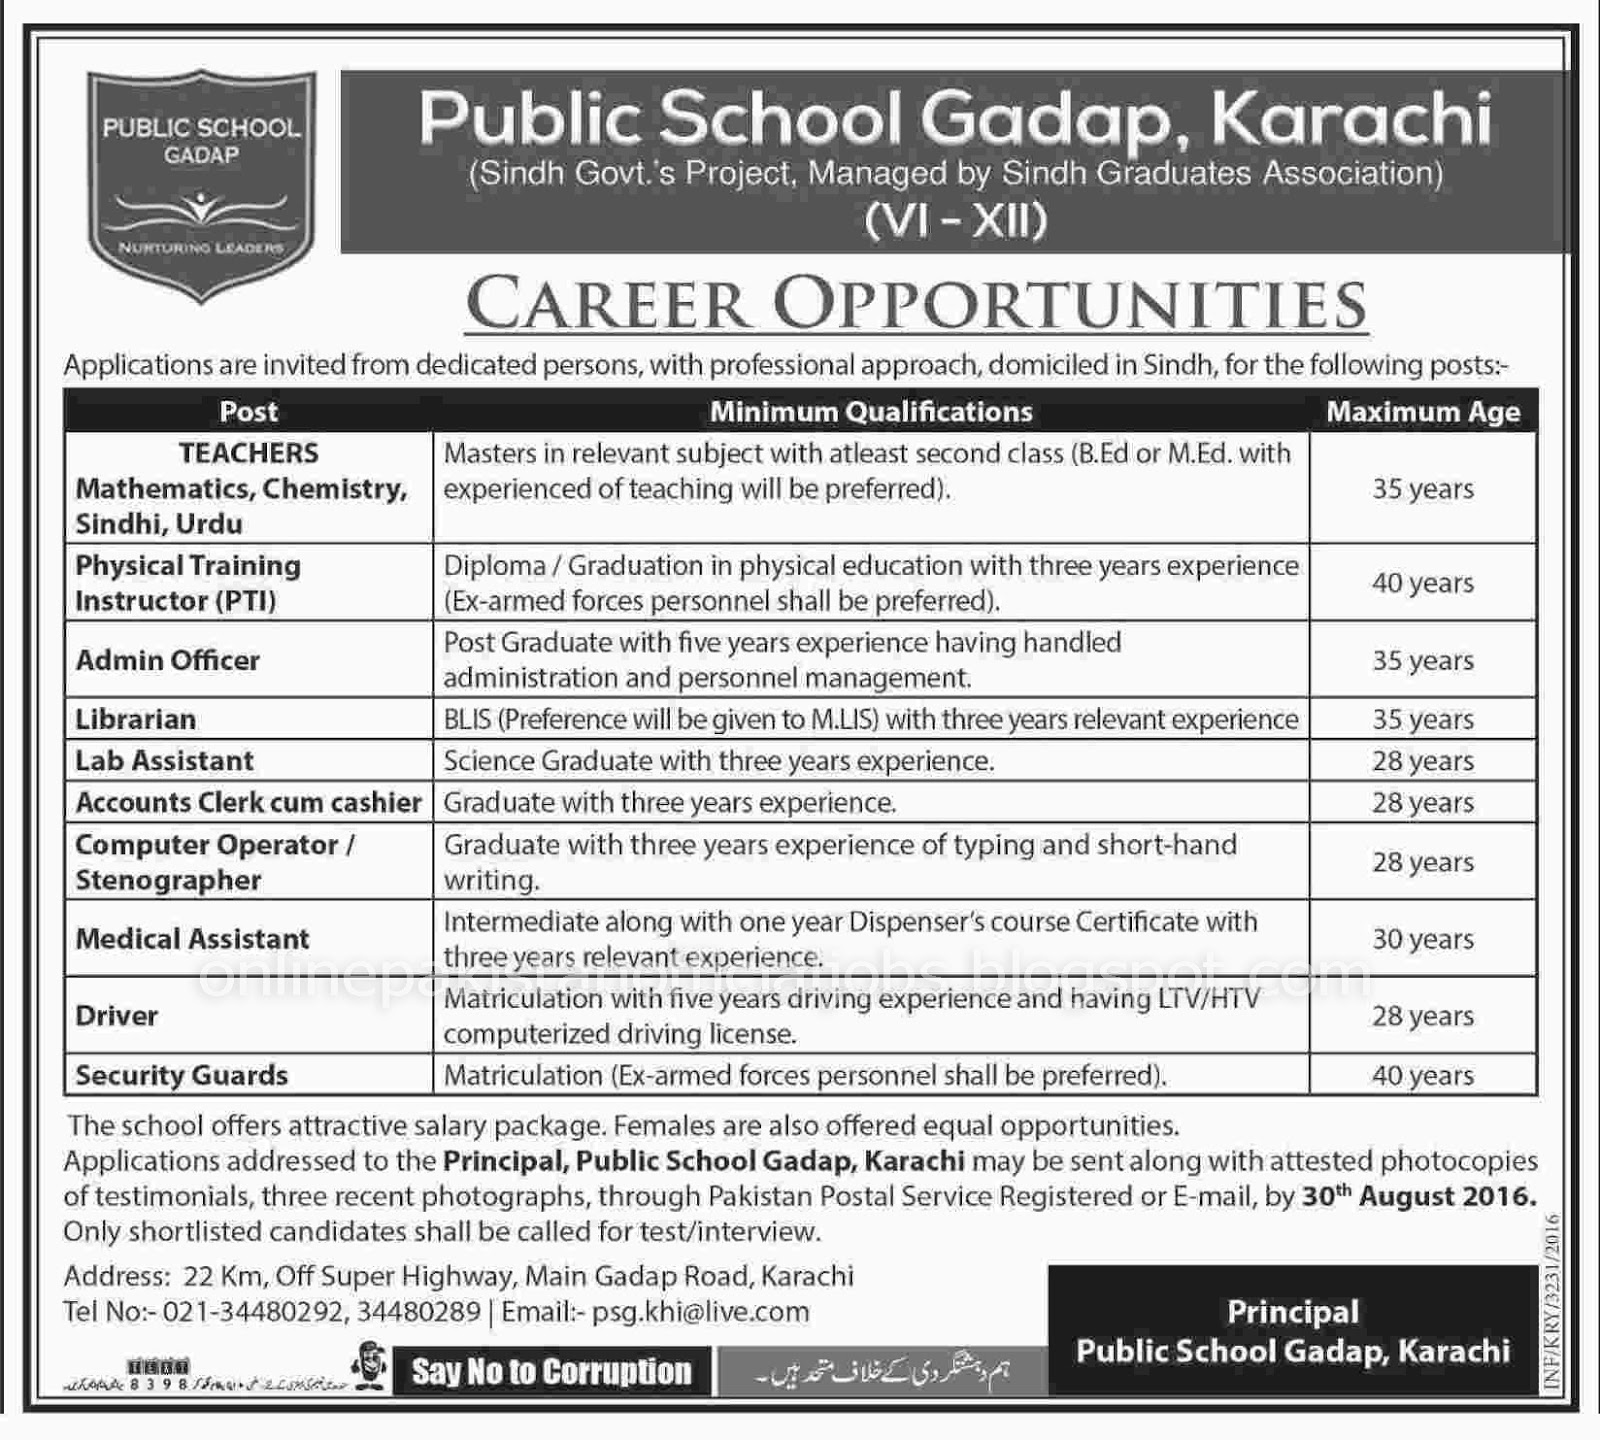 Public School Gadap Karachi Jobs Aug 2016